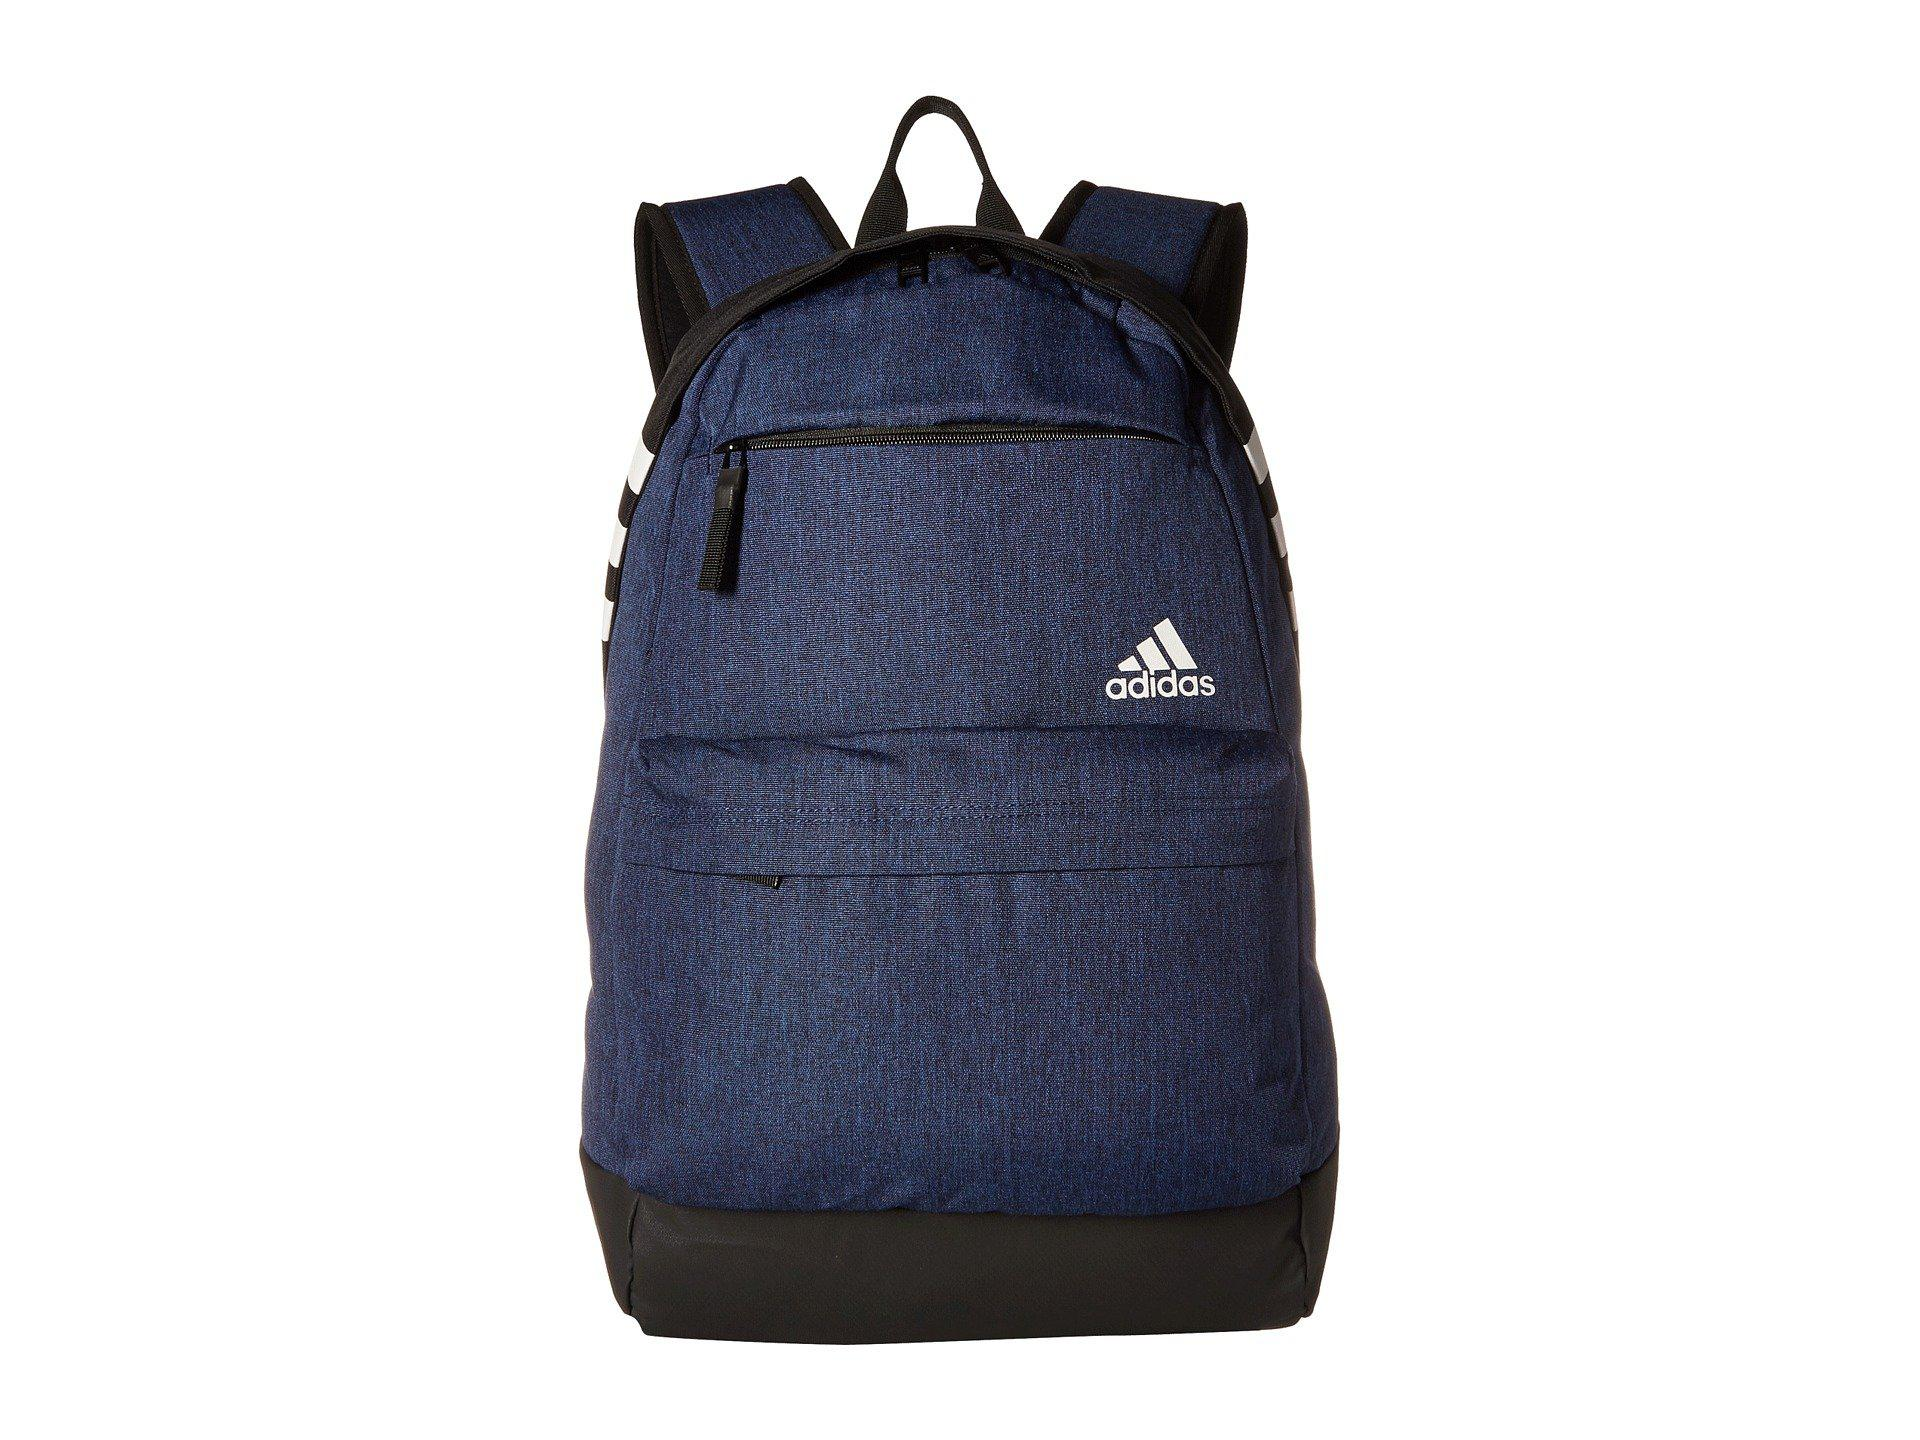 8ade4bc7f3d1 Lyst - Adidas Daybreak Ii Backpack in Black